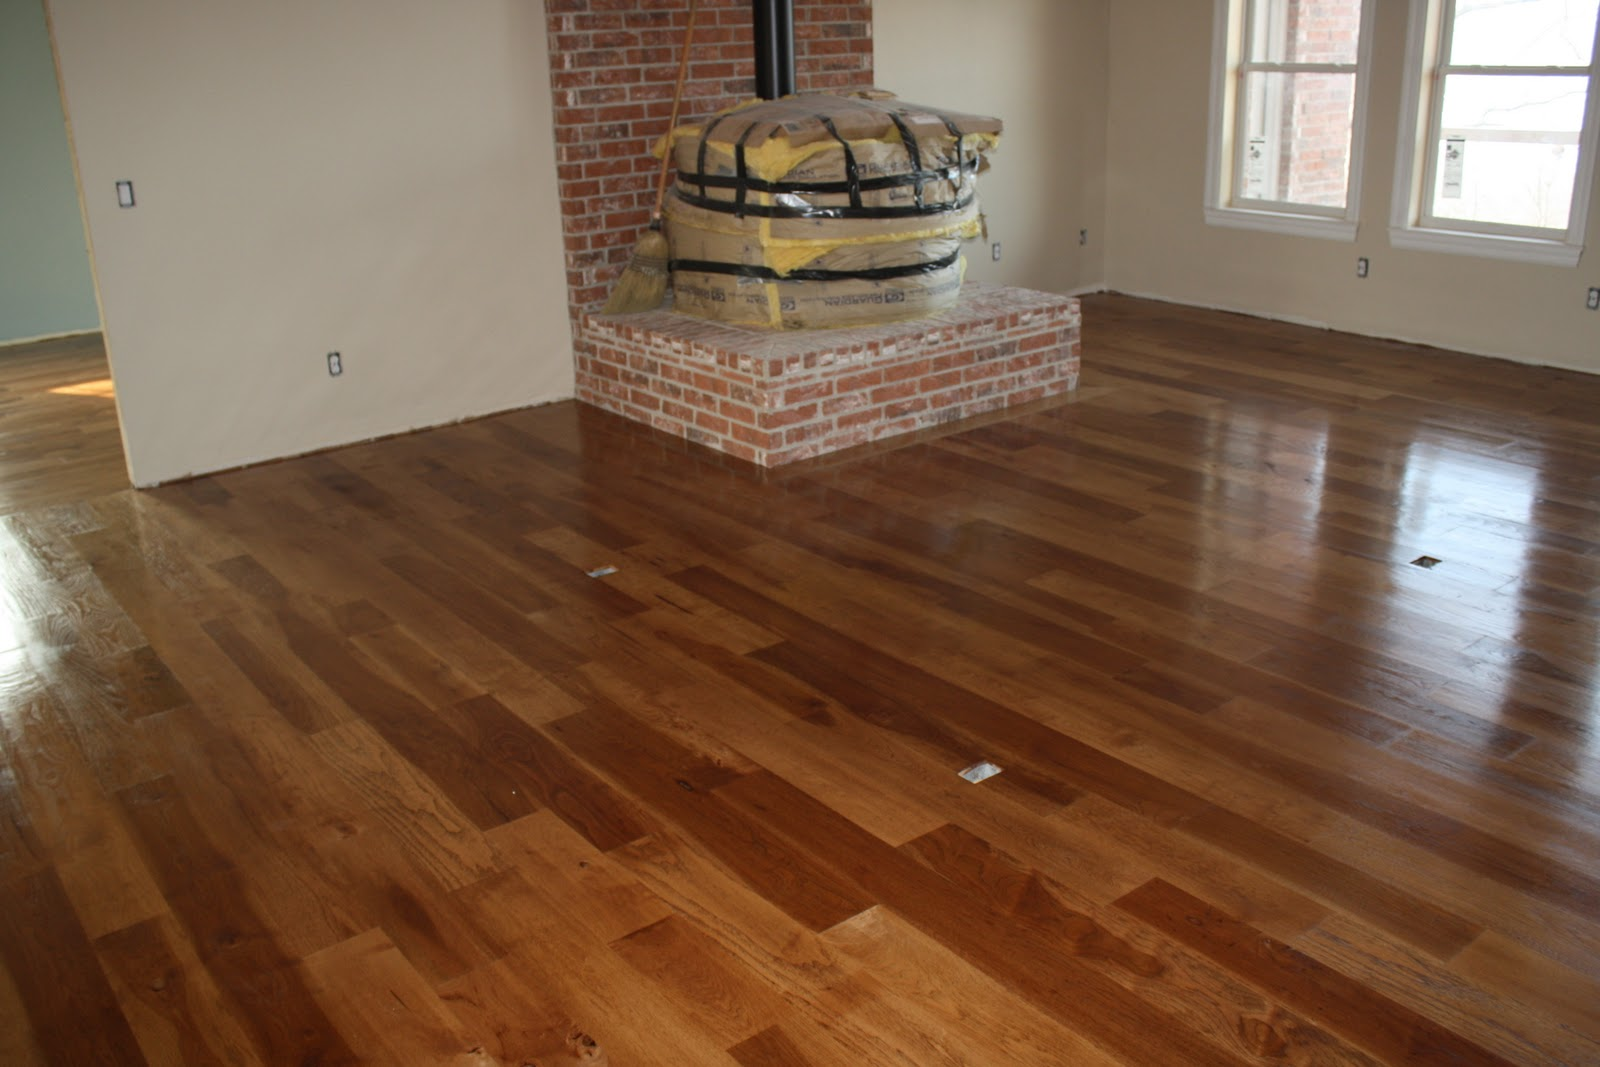 A View Of The Family Room With Semi Finished Floors Darker Stained Wood Is Heart Cut Material And Lighter More Traditional Hickory